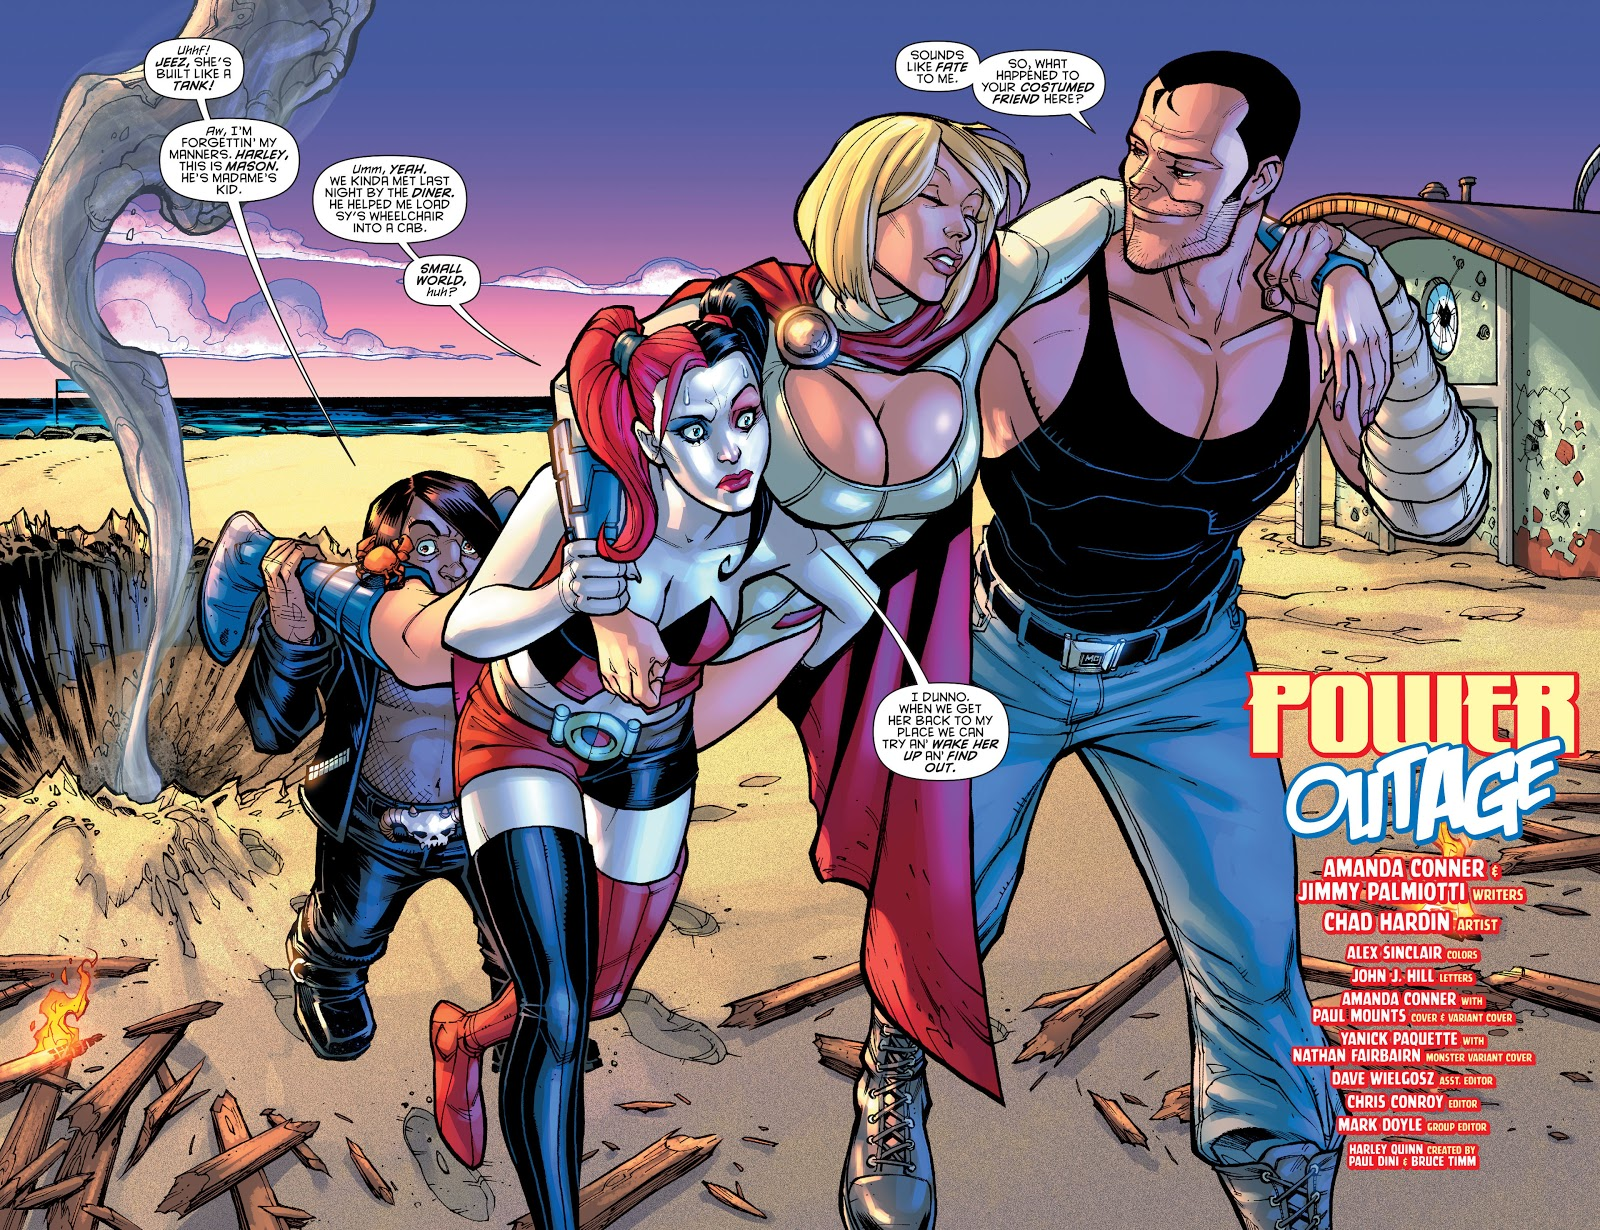 Power Girl (Harley Quinn Vol. 2 #11)